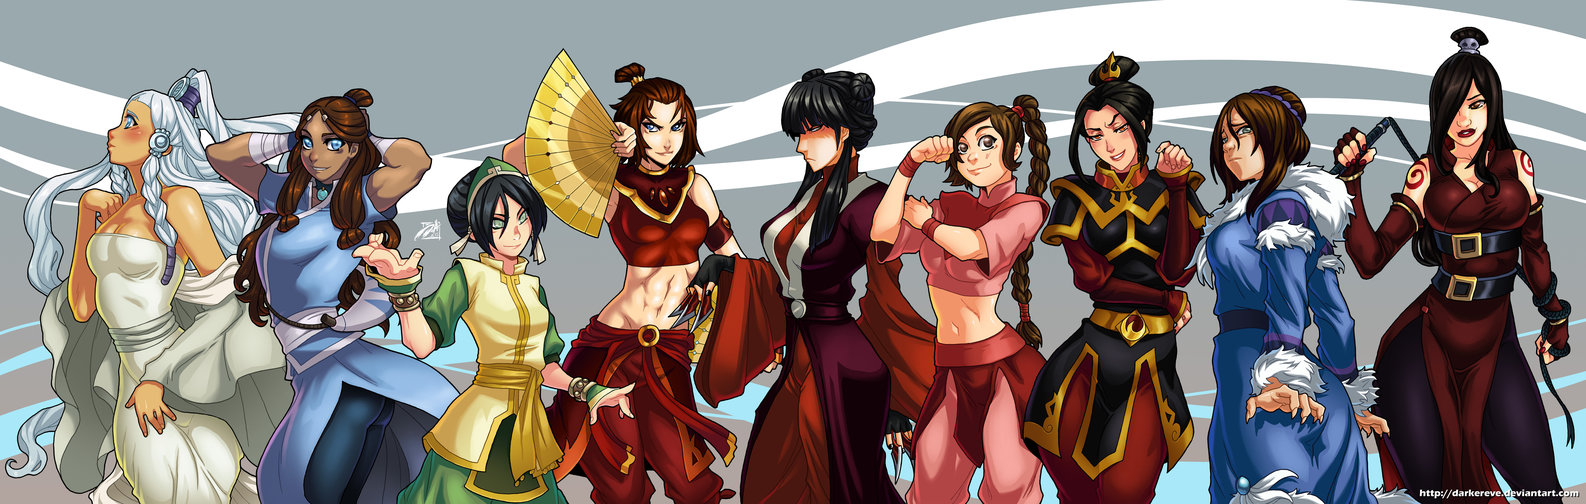 Women of avatar avatar the last airbender the legend of korra httpdarkereve avatar the last airbender aang the legend of korra voltagebd Image collections